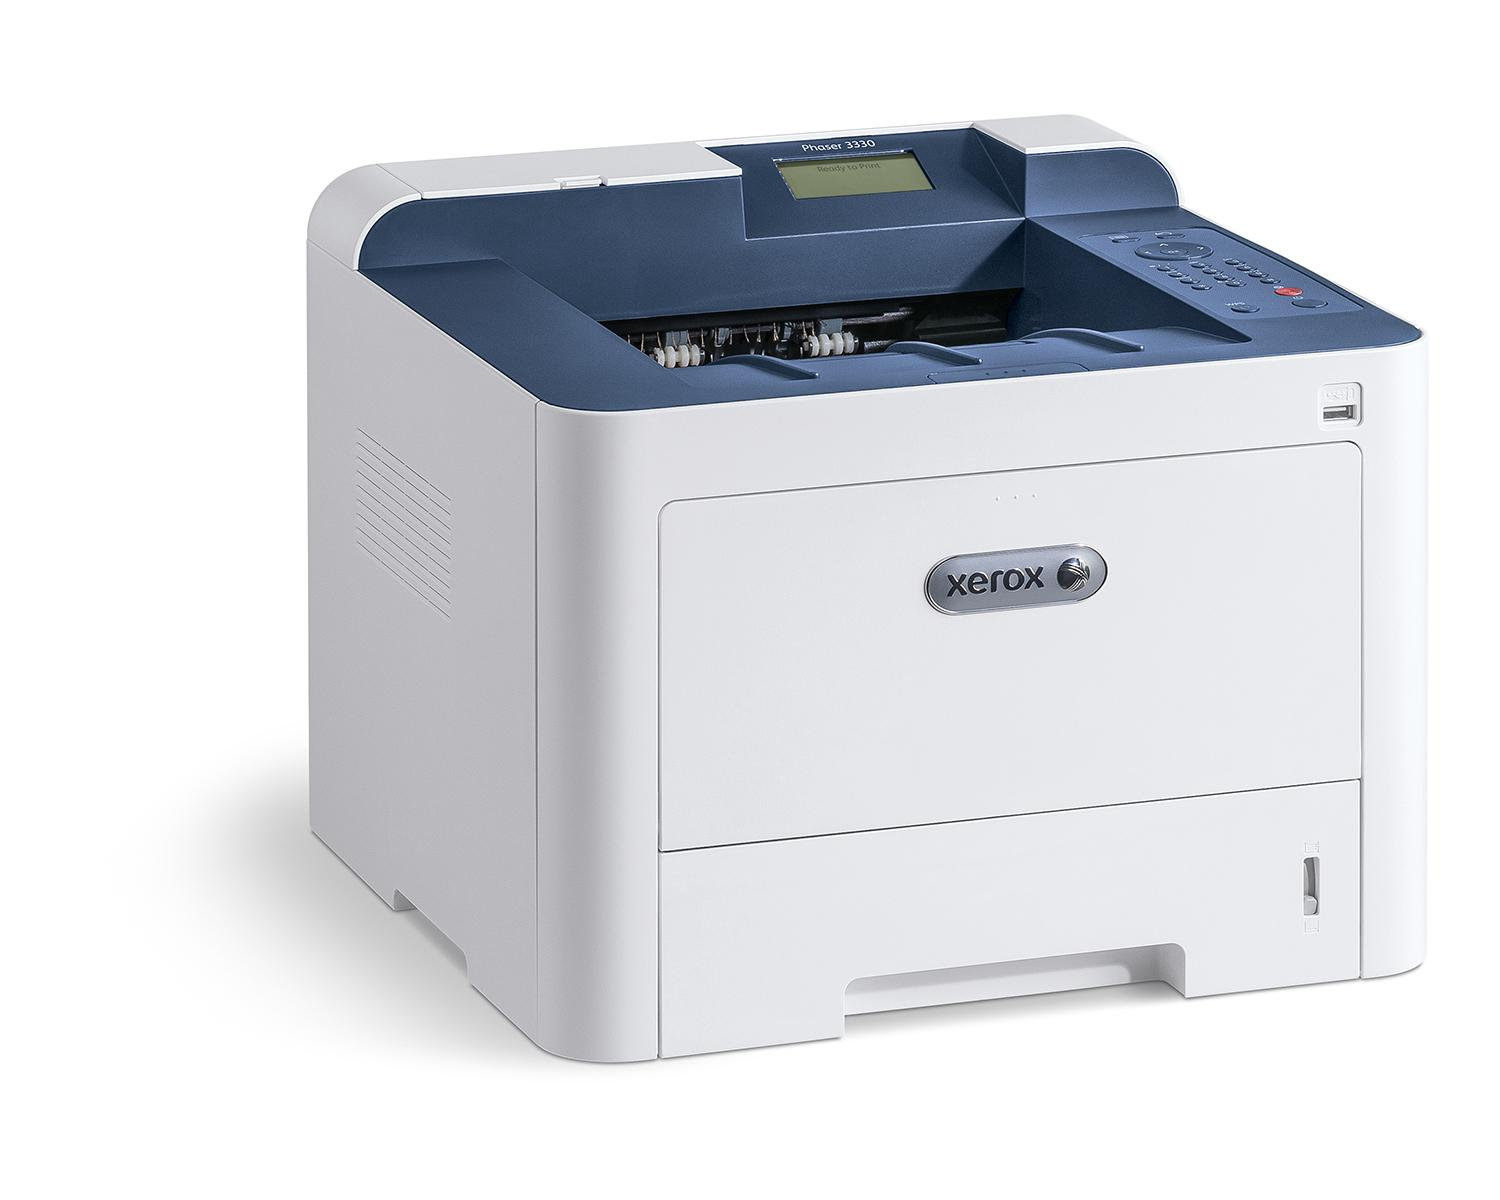 Xerox Workcentre 7435 Driver Download Related Keywords